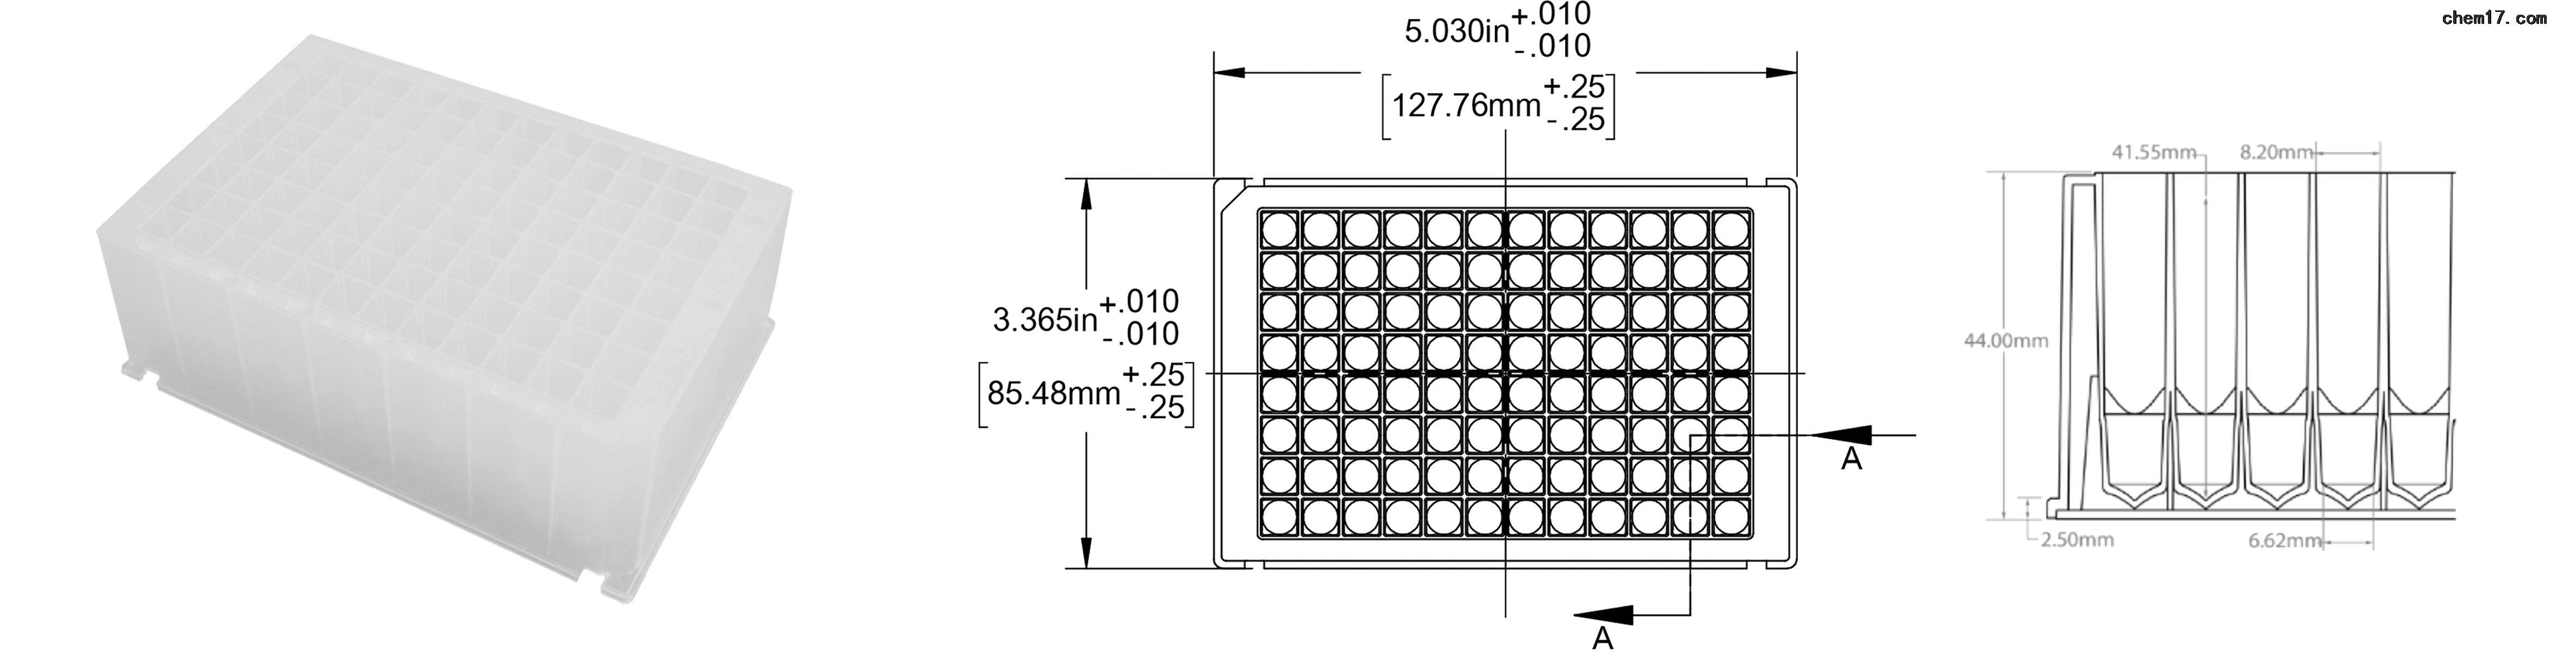 Collection Plate 3 Schematics_porvair.png